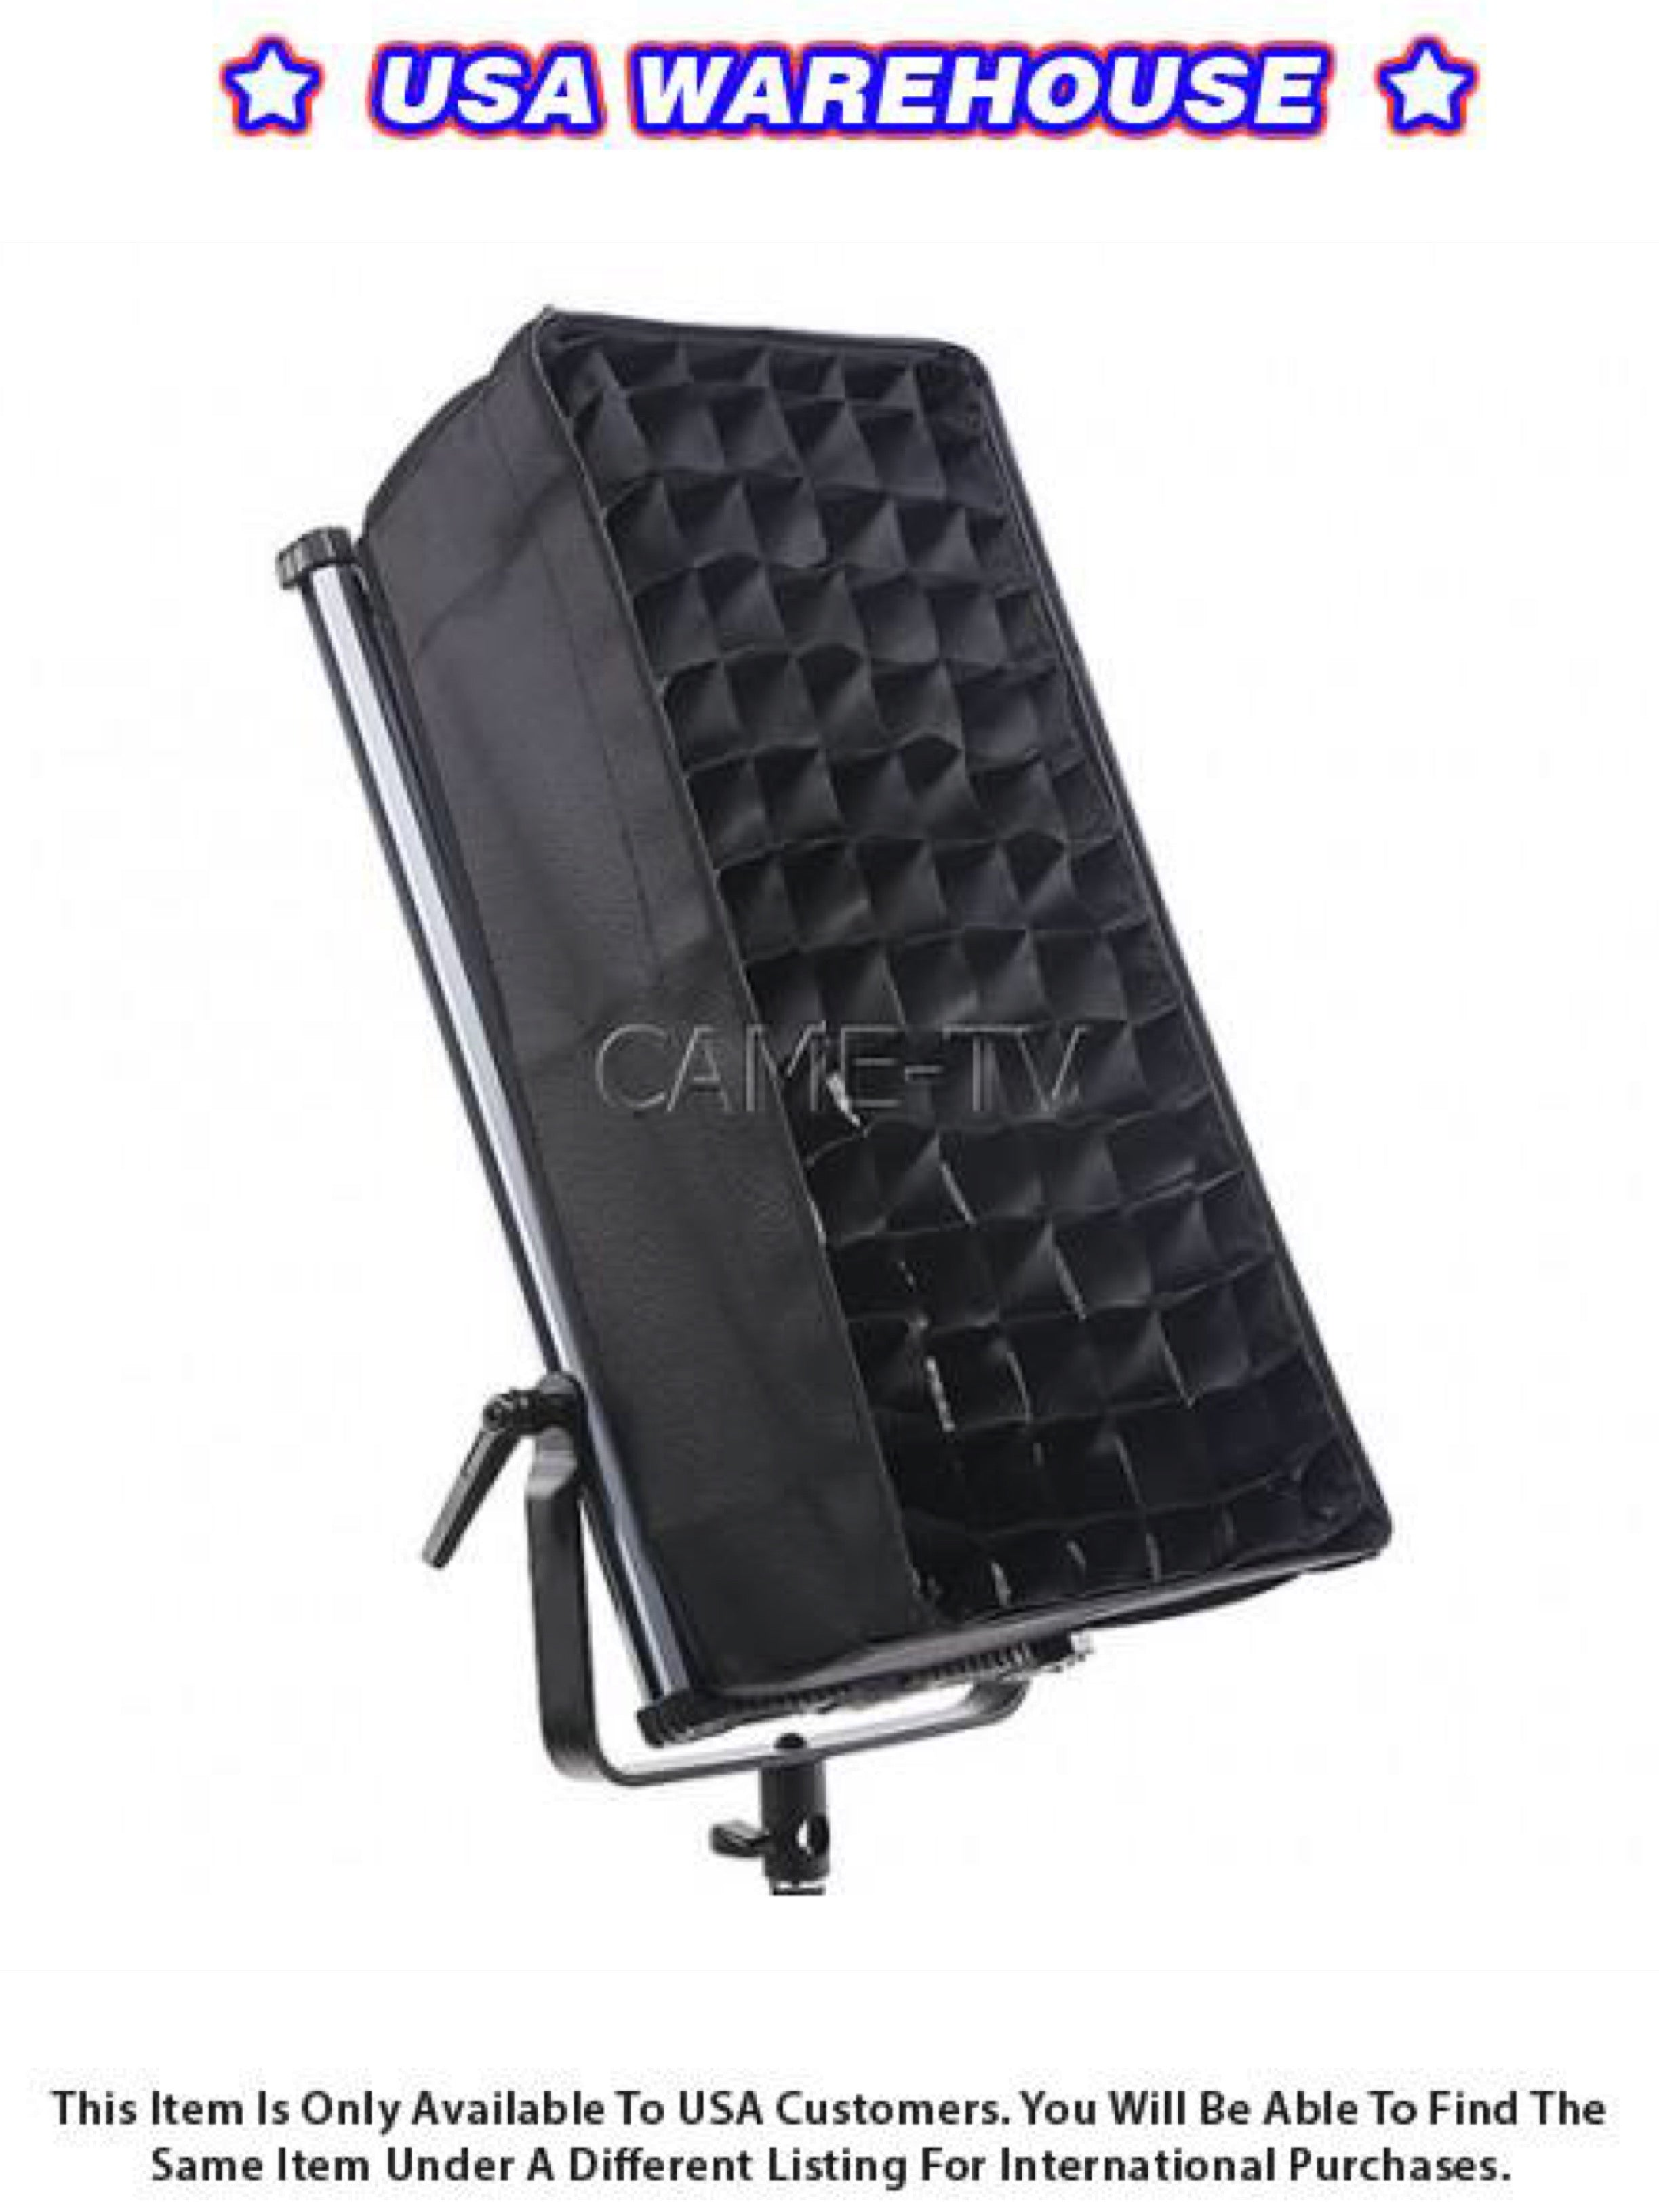 Softbox For 1092 LED Panels - USA Warehouse